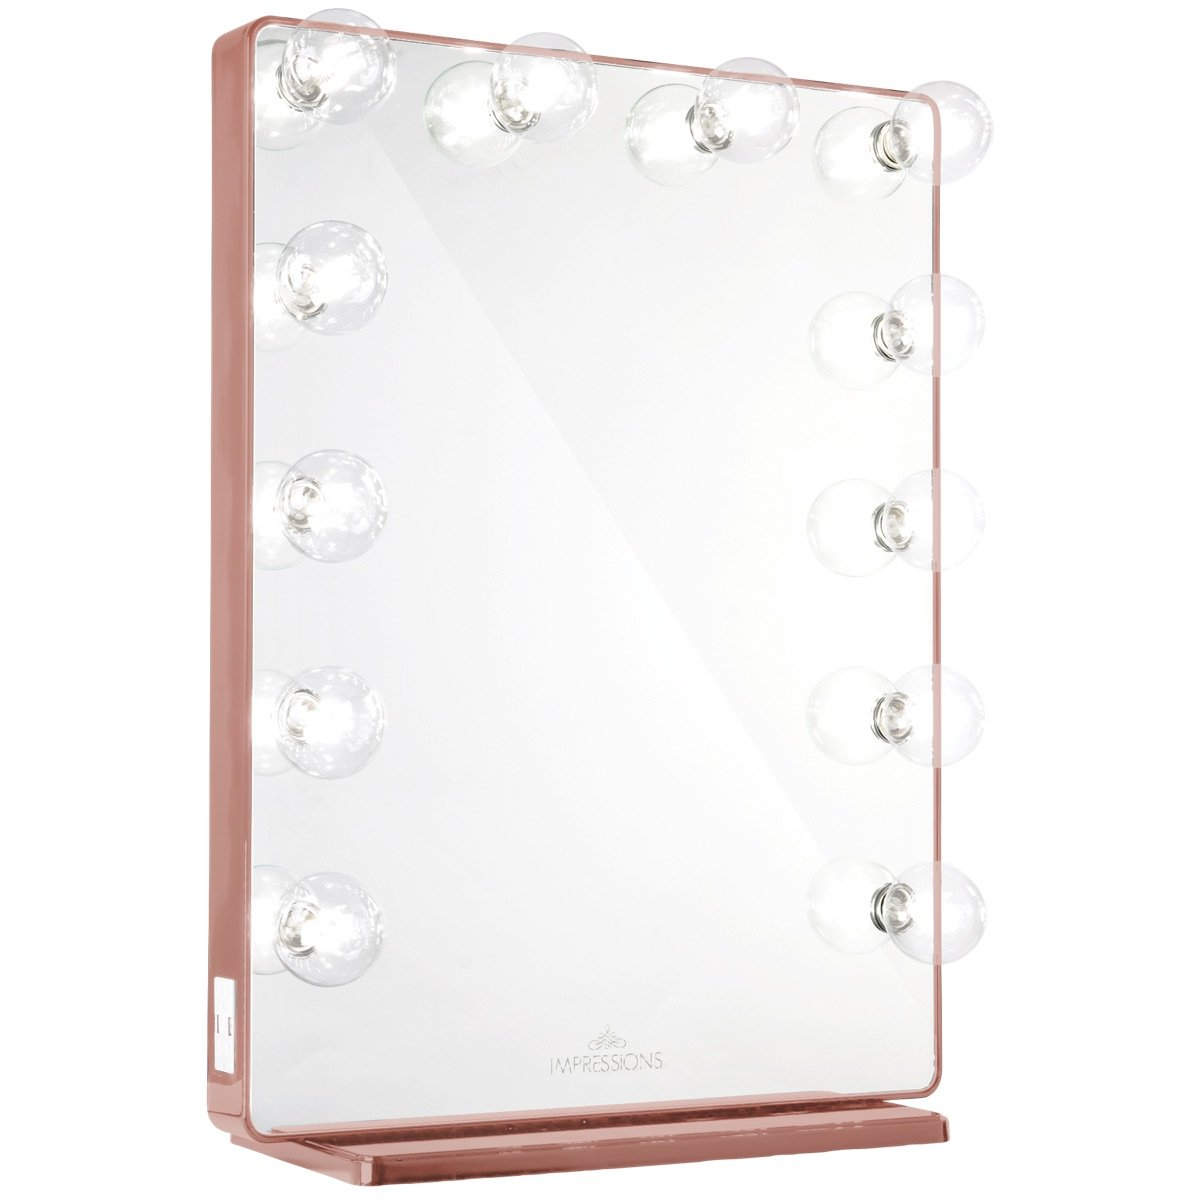 Rose Gold Vanity Mirror w/ Clear LED Light Bulbs